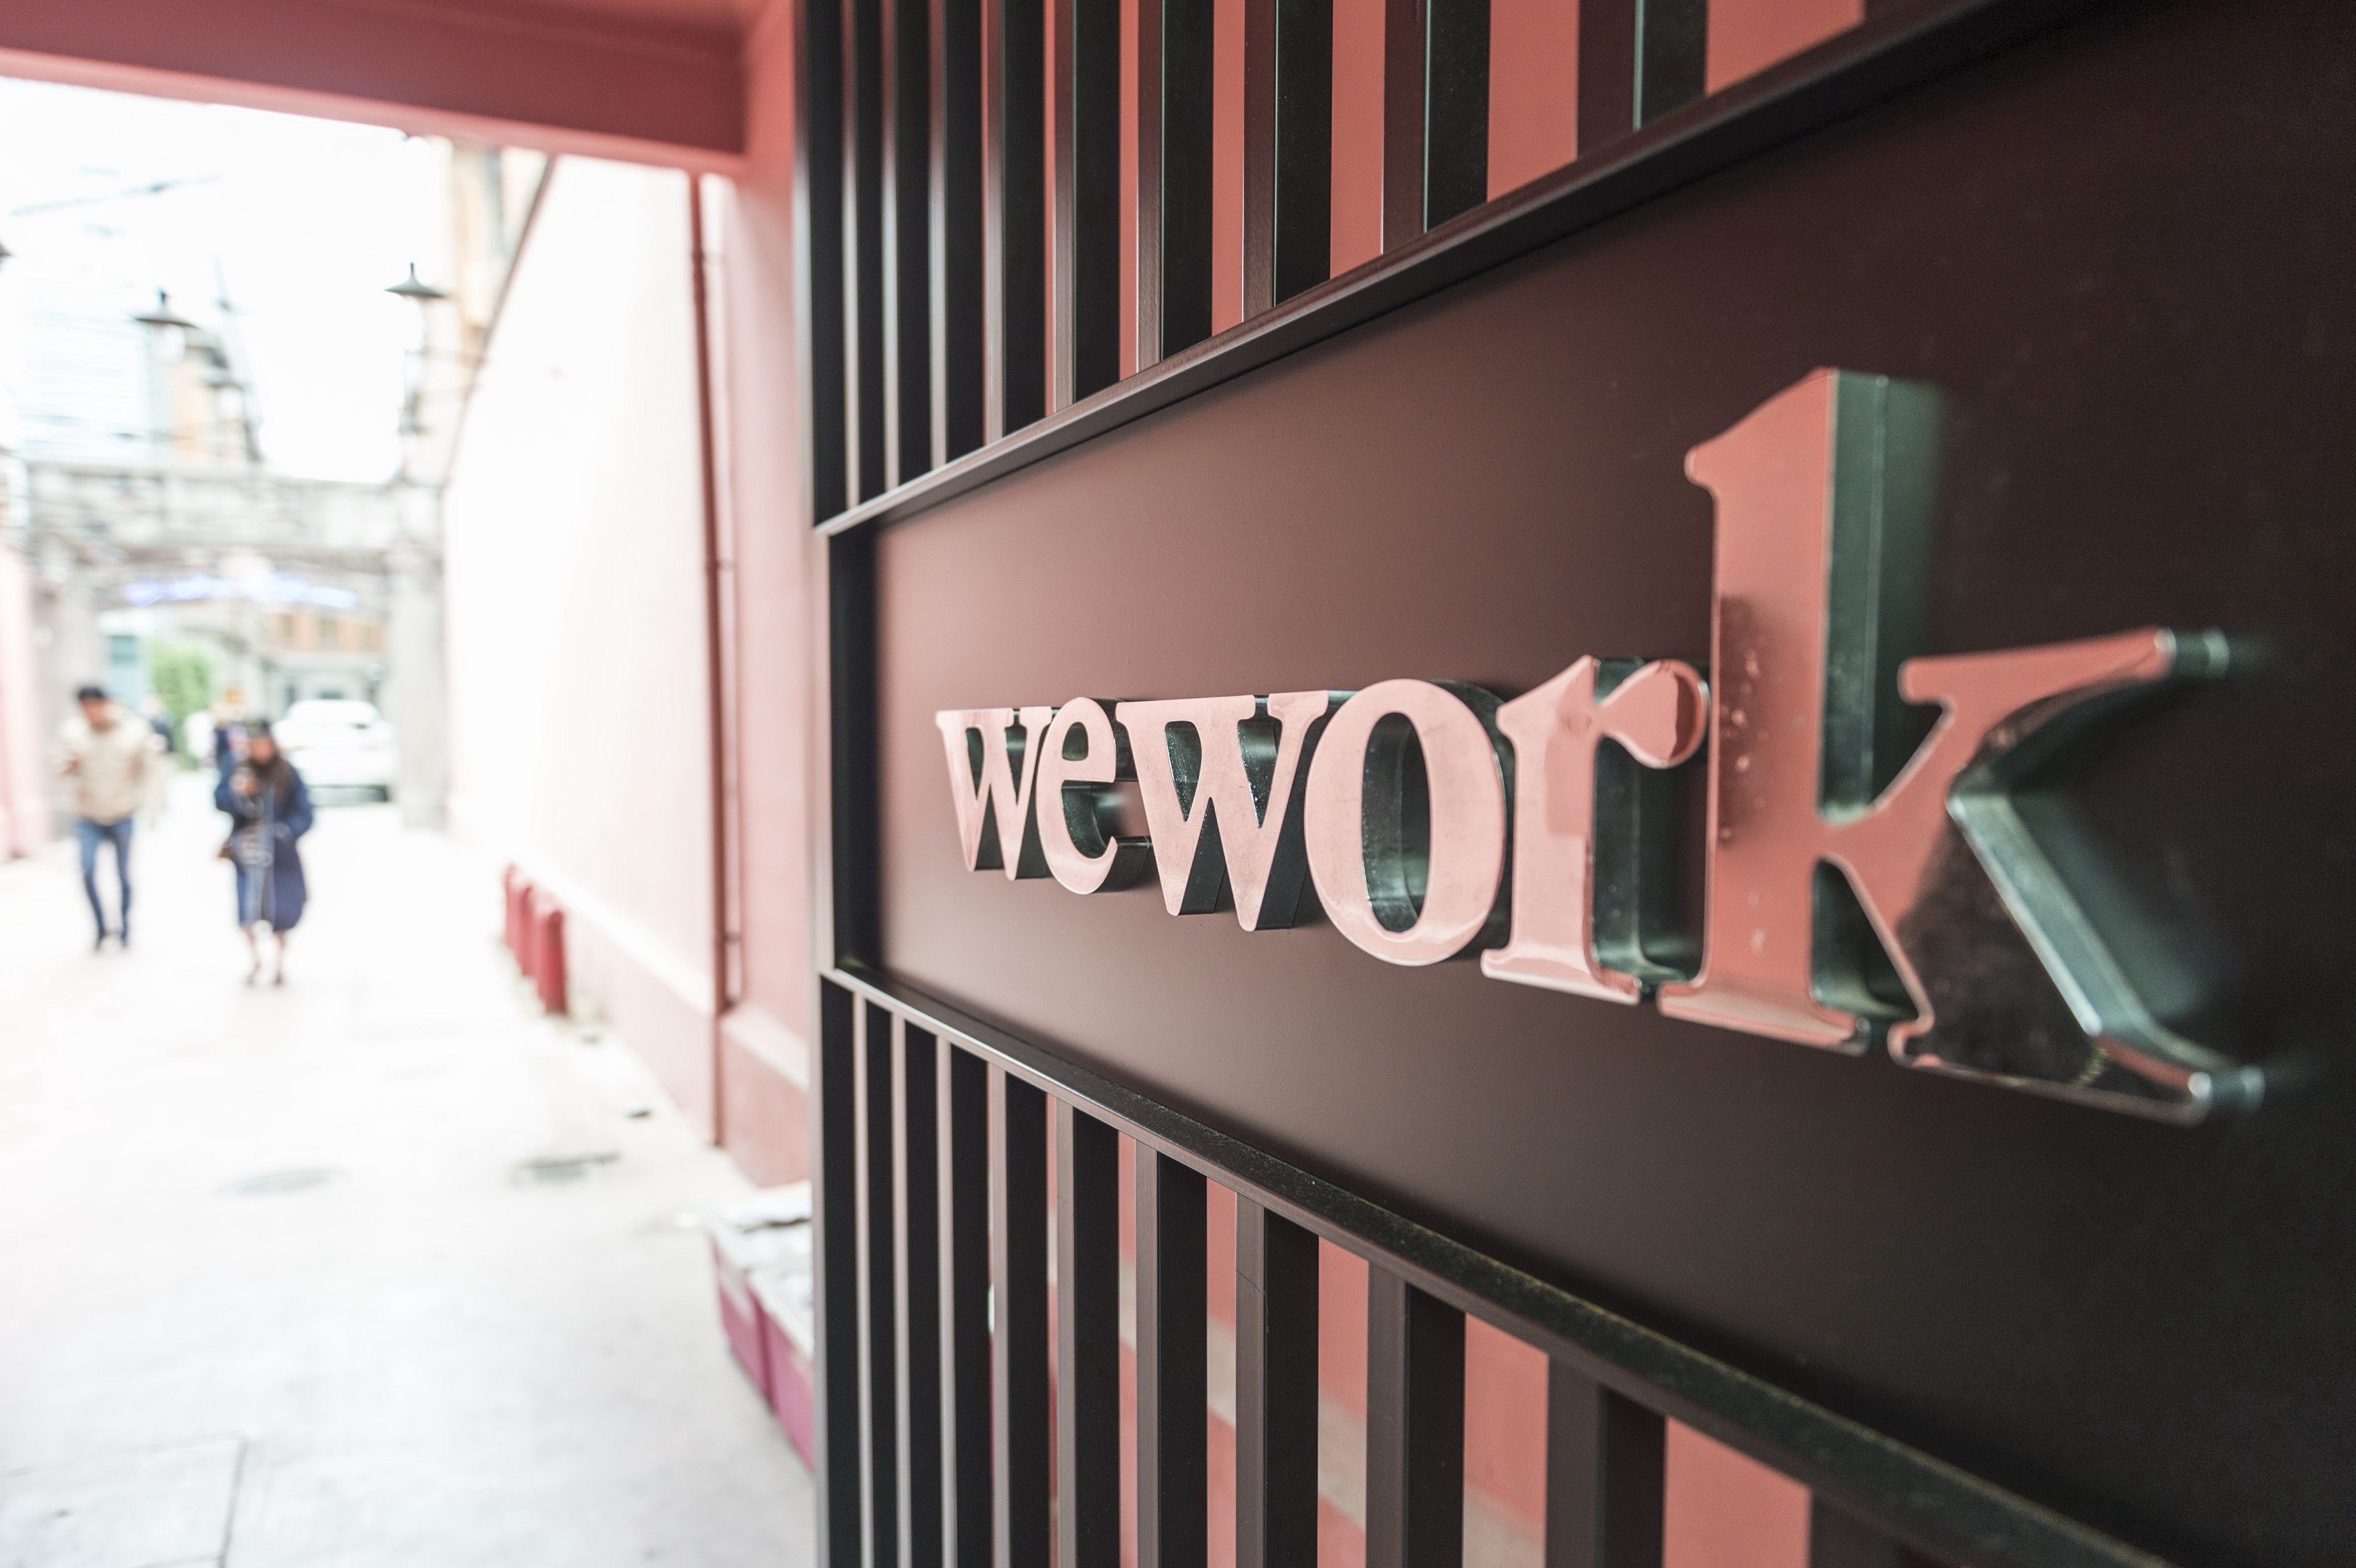 Lex in Depth: Why WeWork Does Not Deserve a $20bn Price Tag